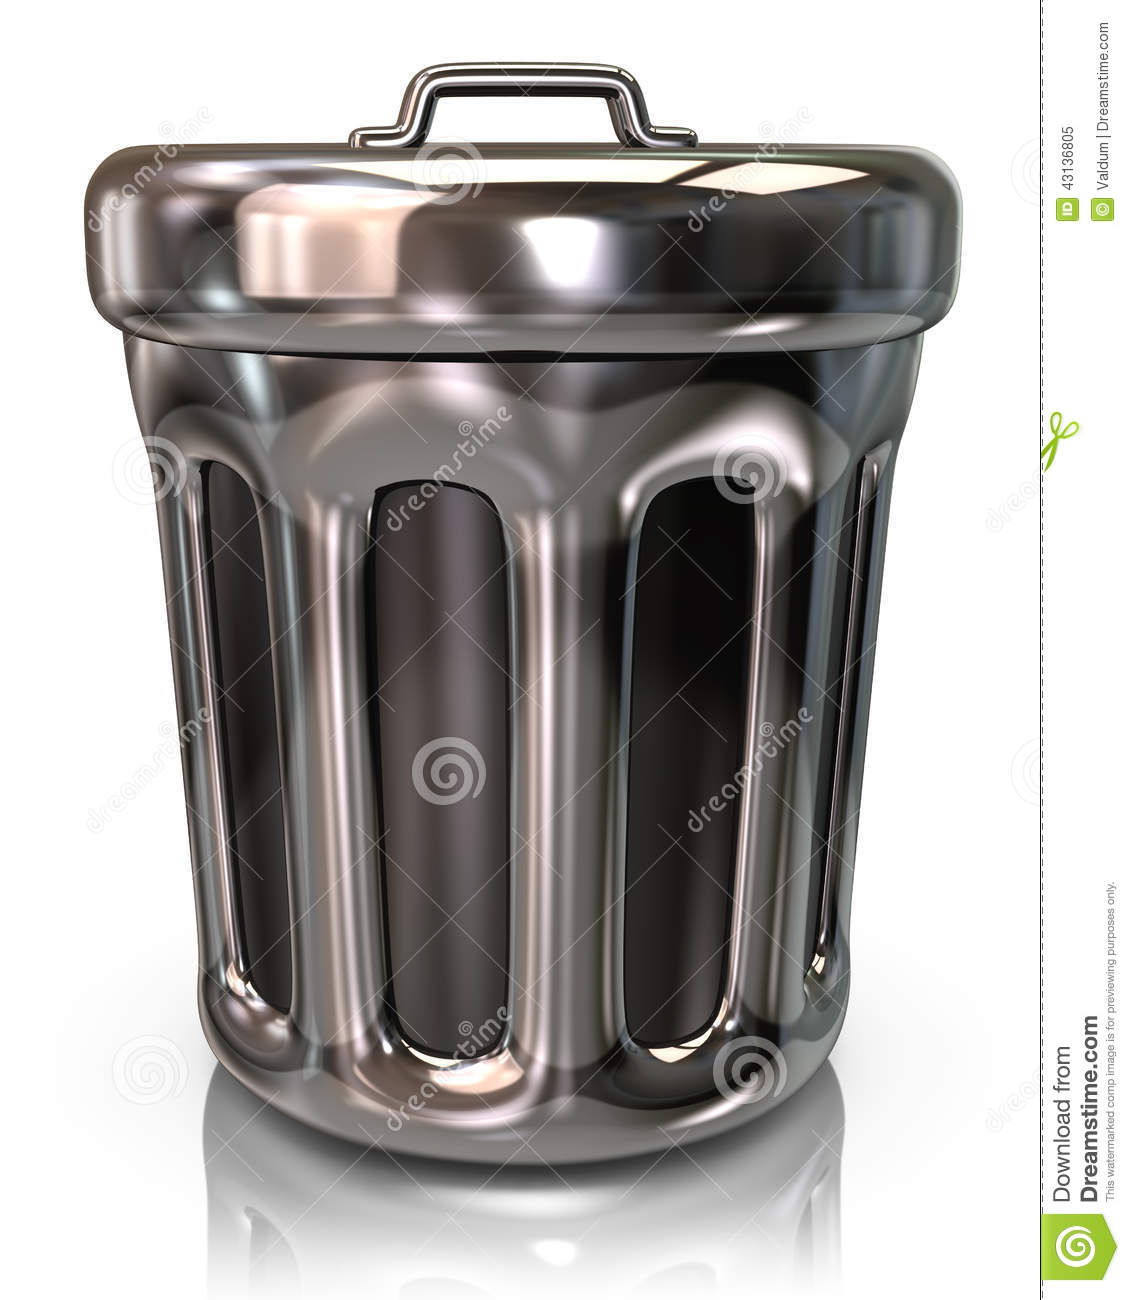 Silver Trash Cans Silver Trash Can Icon Stock Illustration Image 43136805